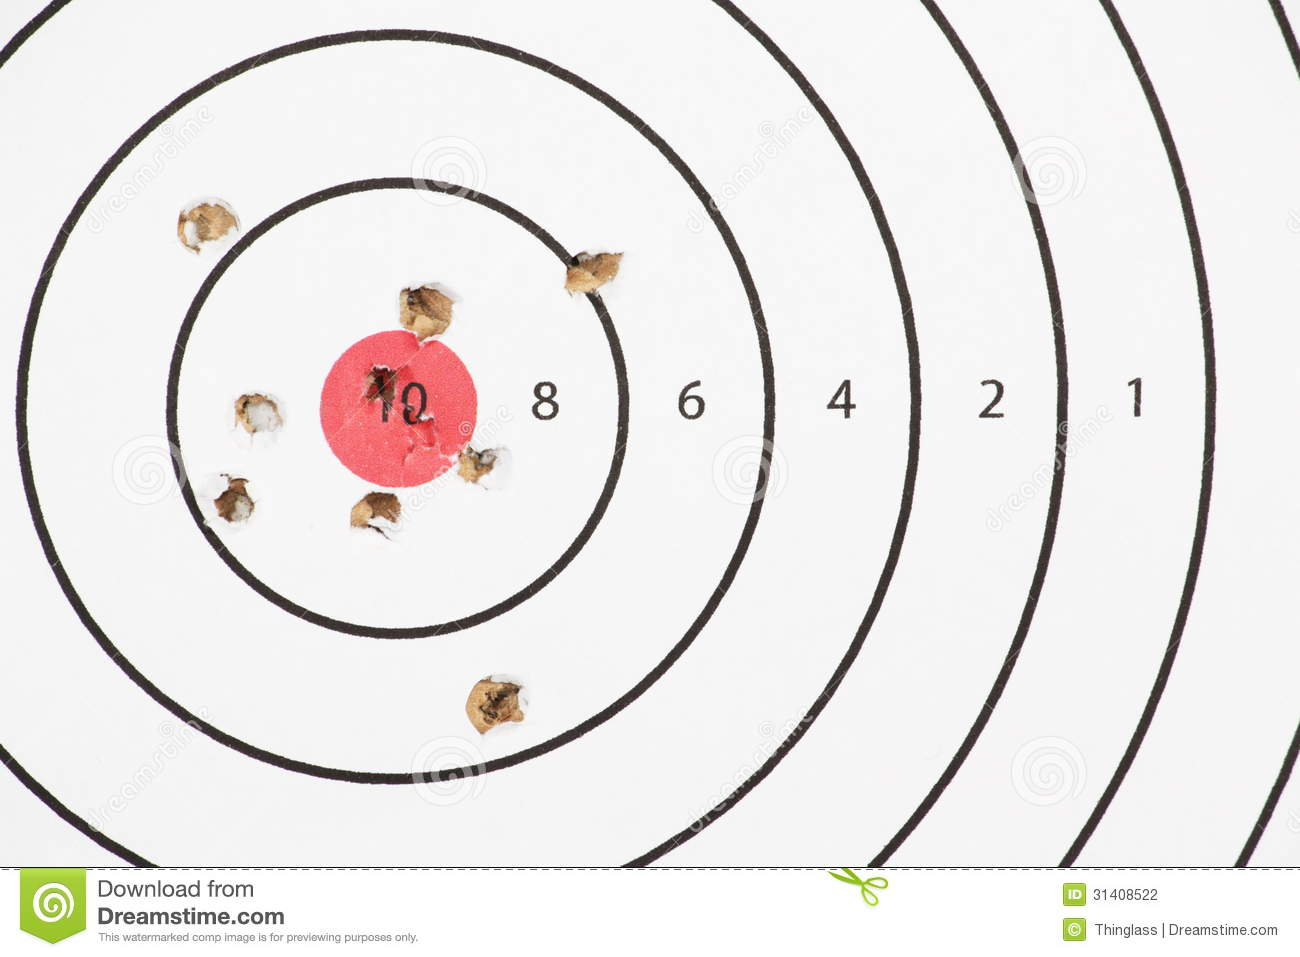 Close up of a shooting target with a red bullseye and bullet or pellet